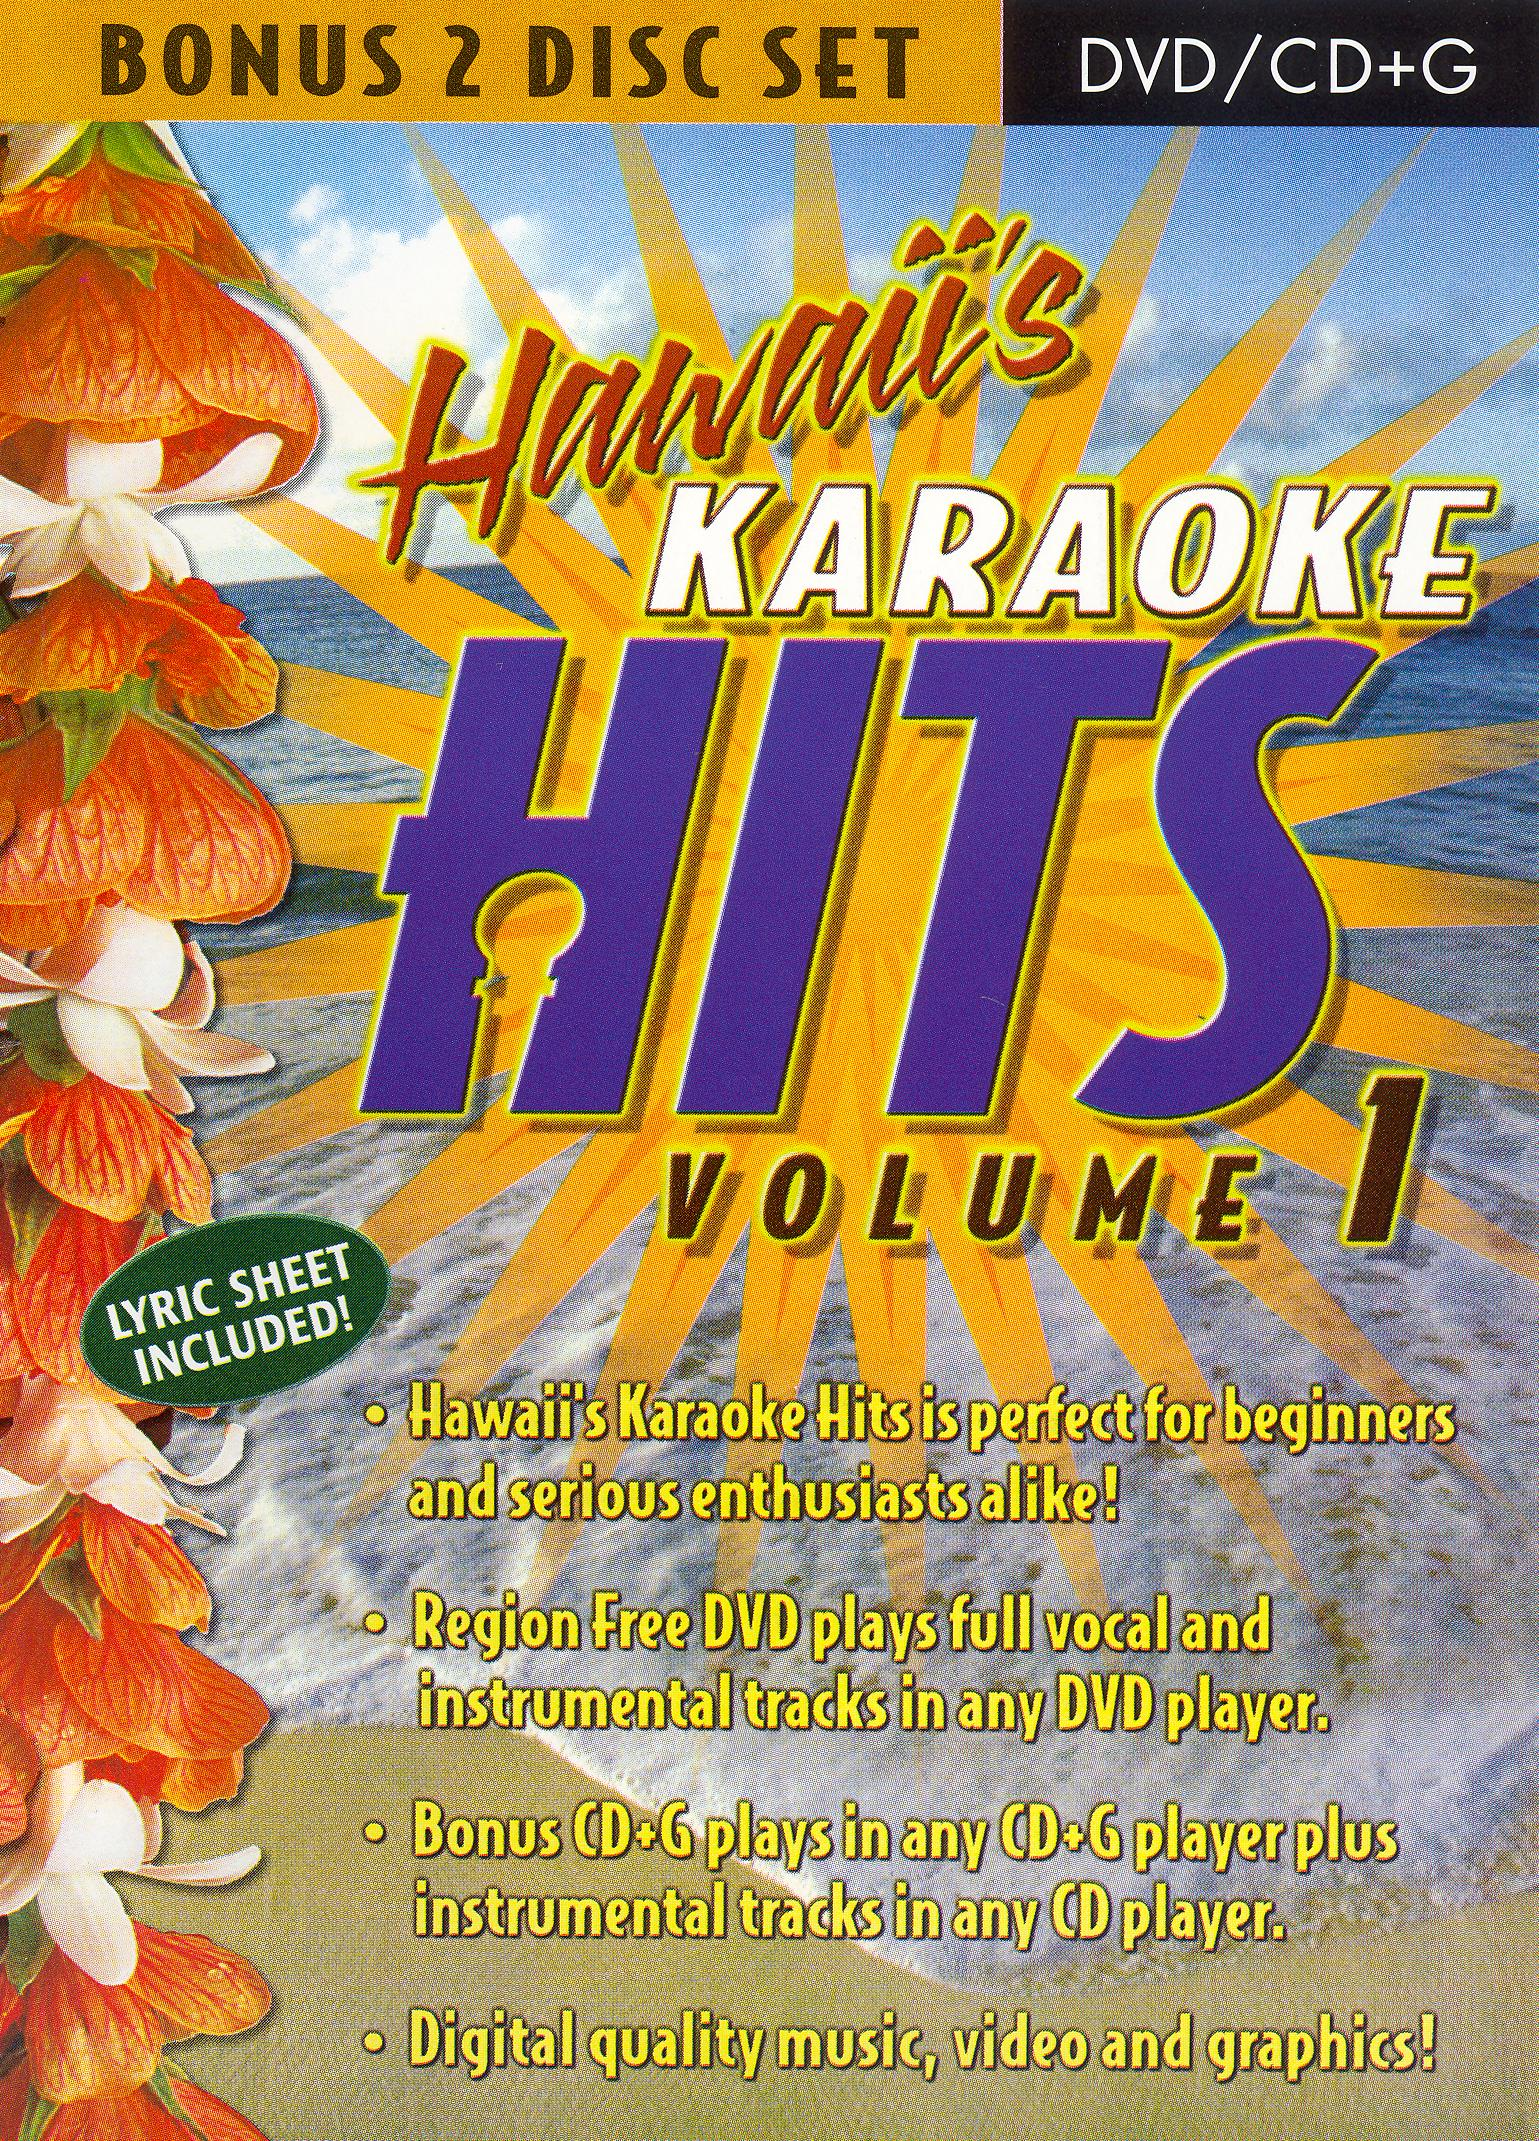 Hawaii's Karaoke Hits, Vol. 1